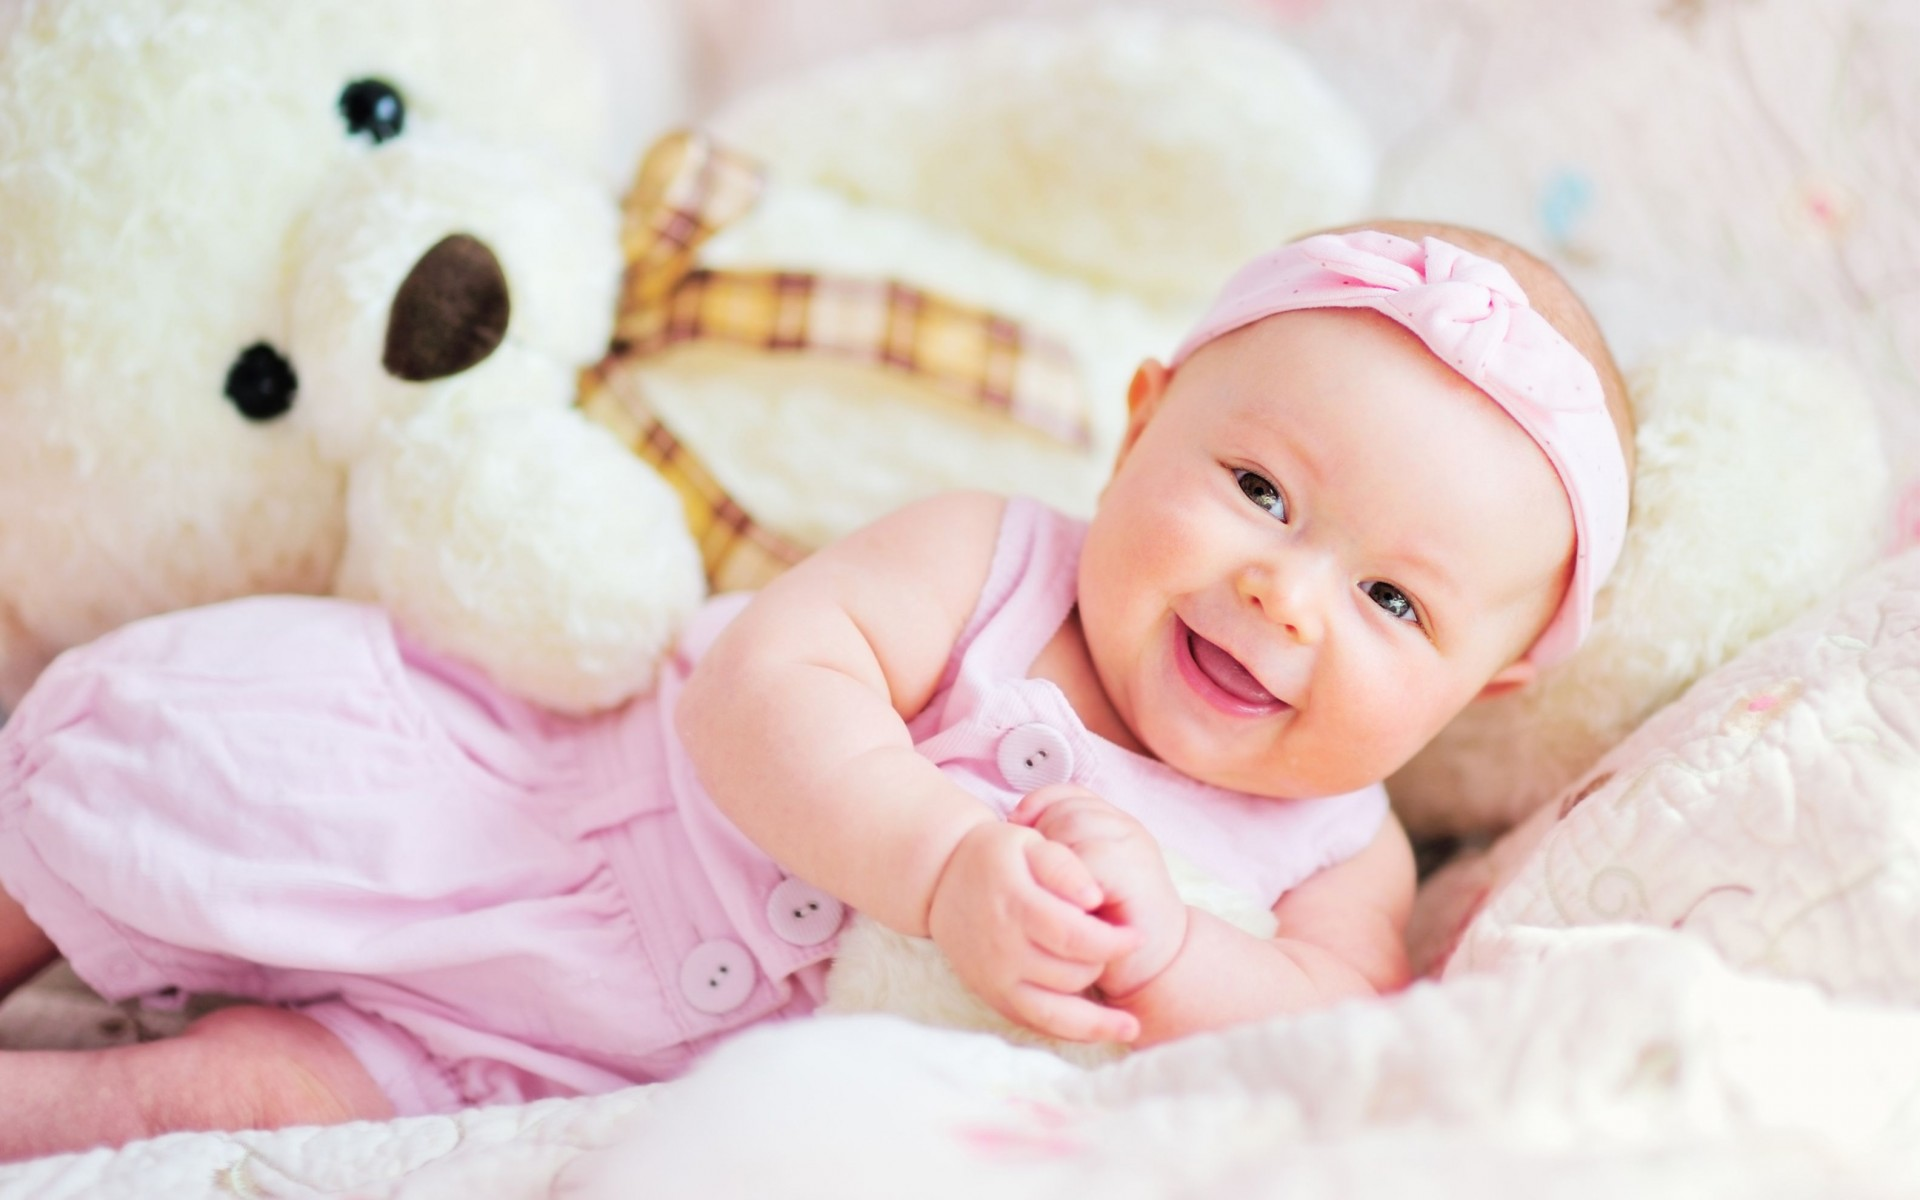 Cute Baby Teddy Bear Wide Wallpaper